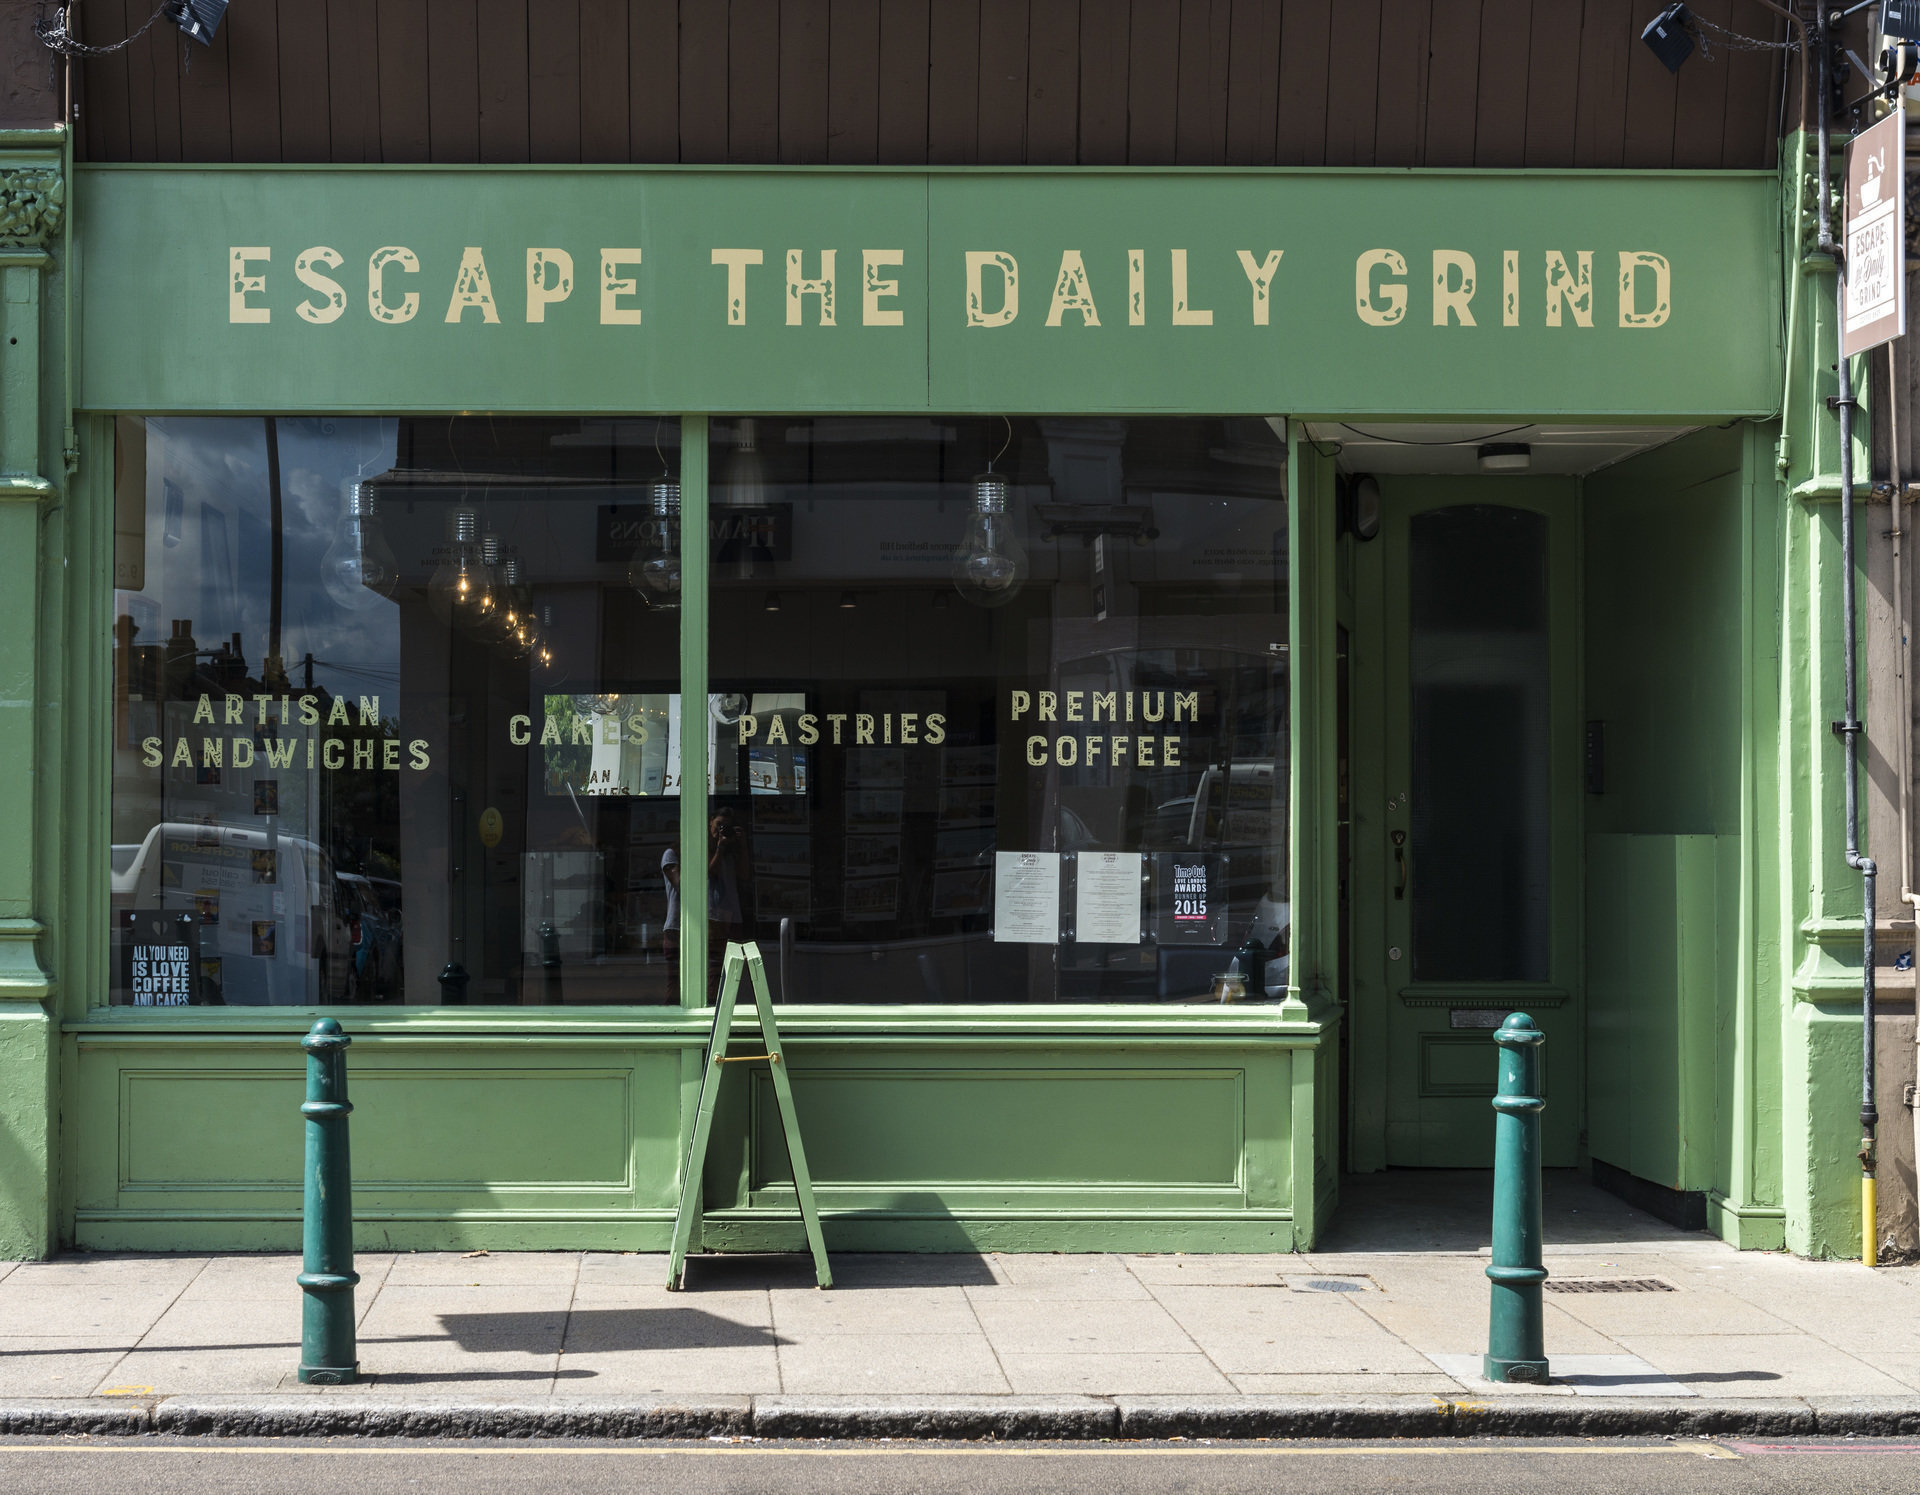 Escape The Daily Grind: A Work-Friendly Place in London